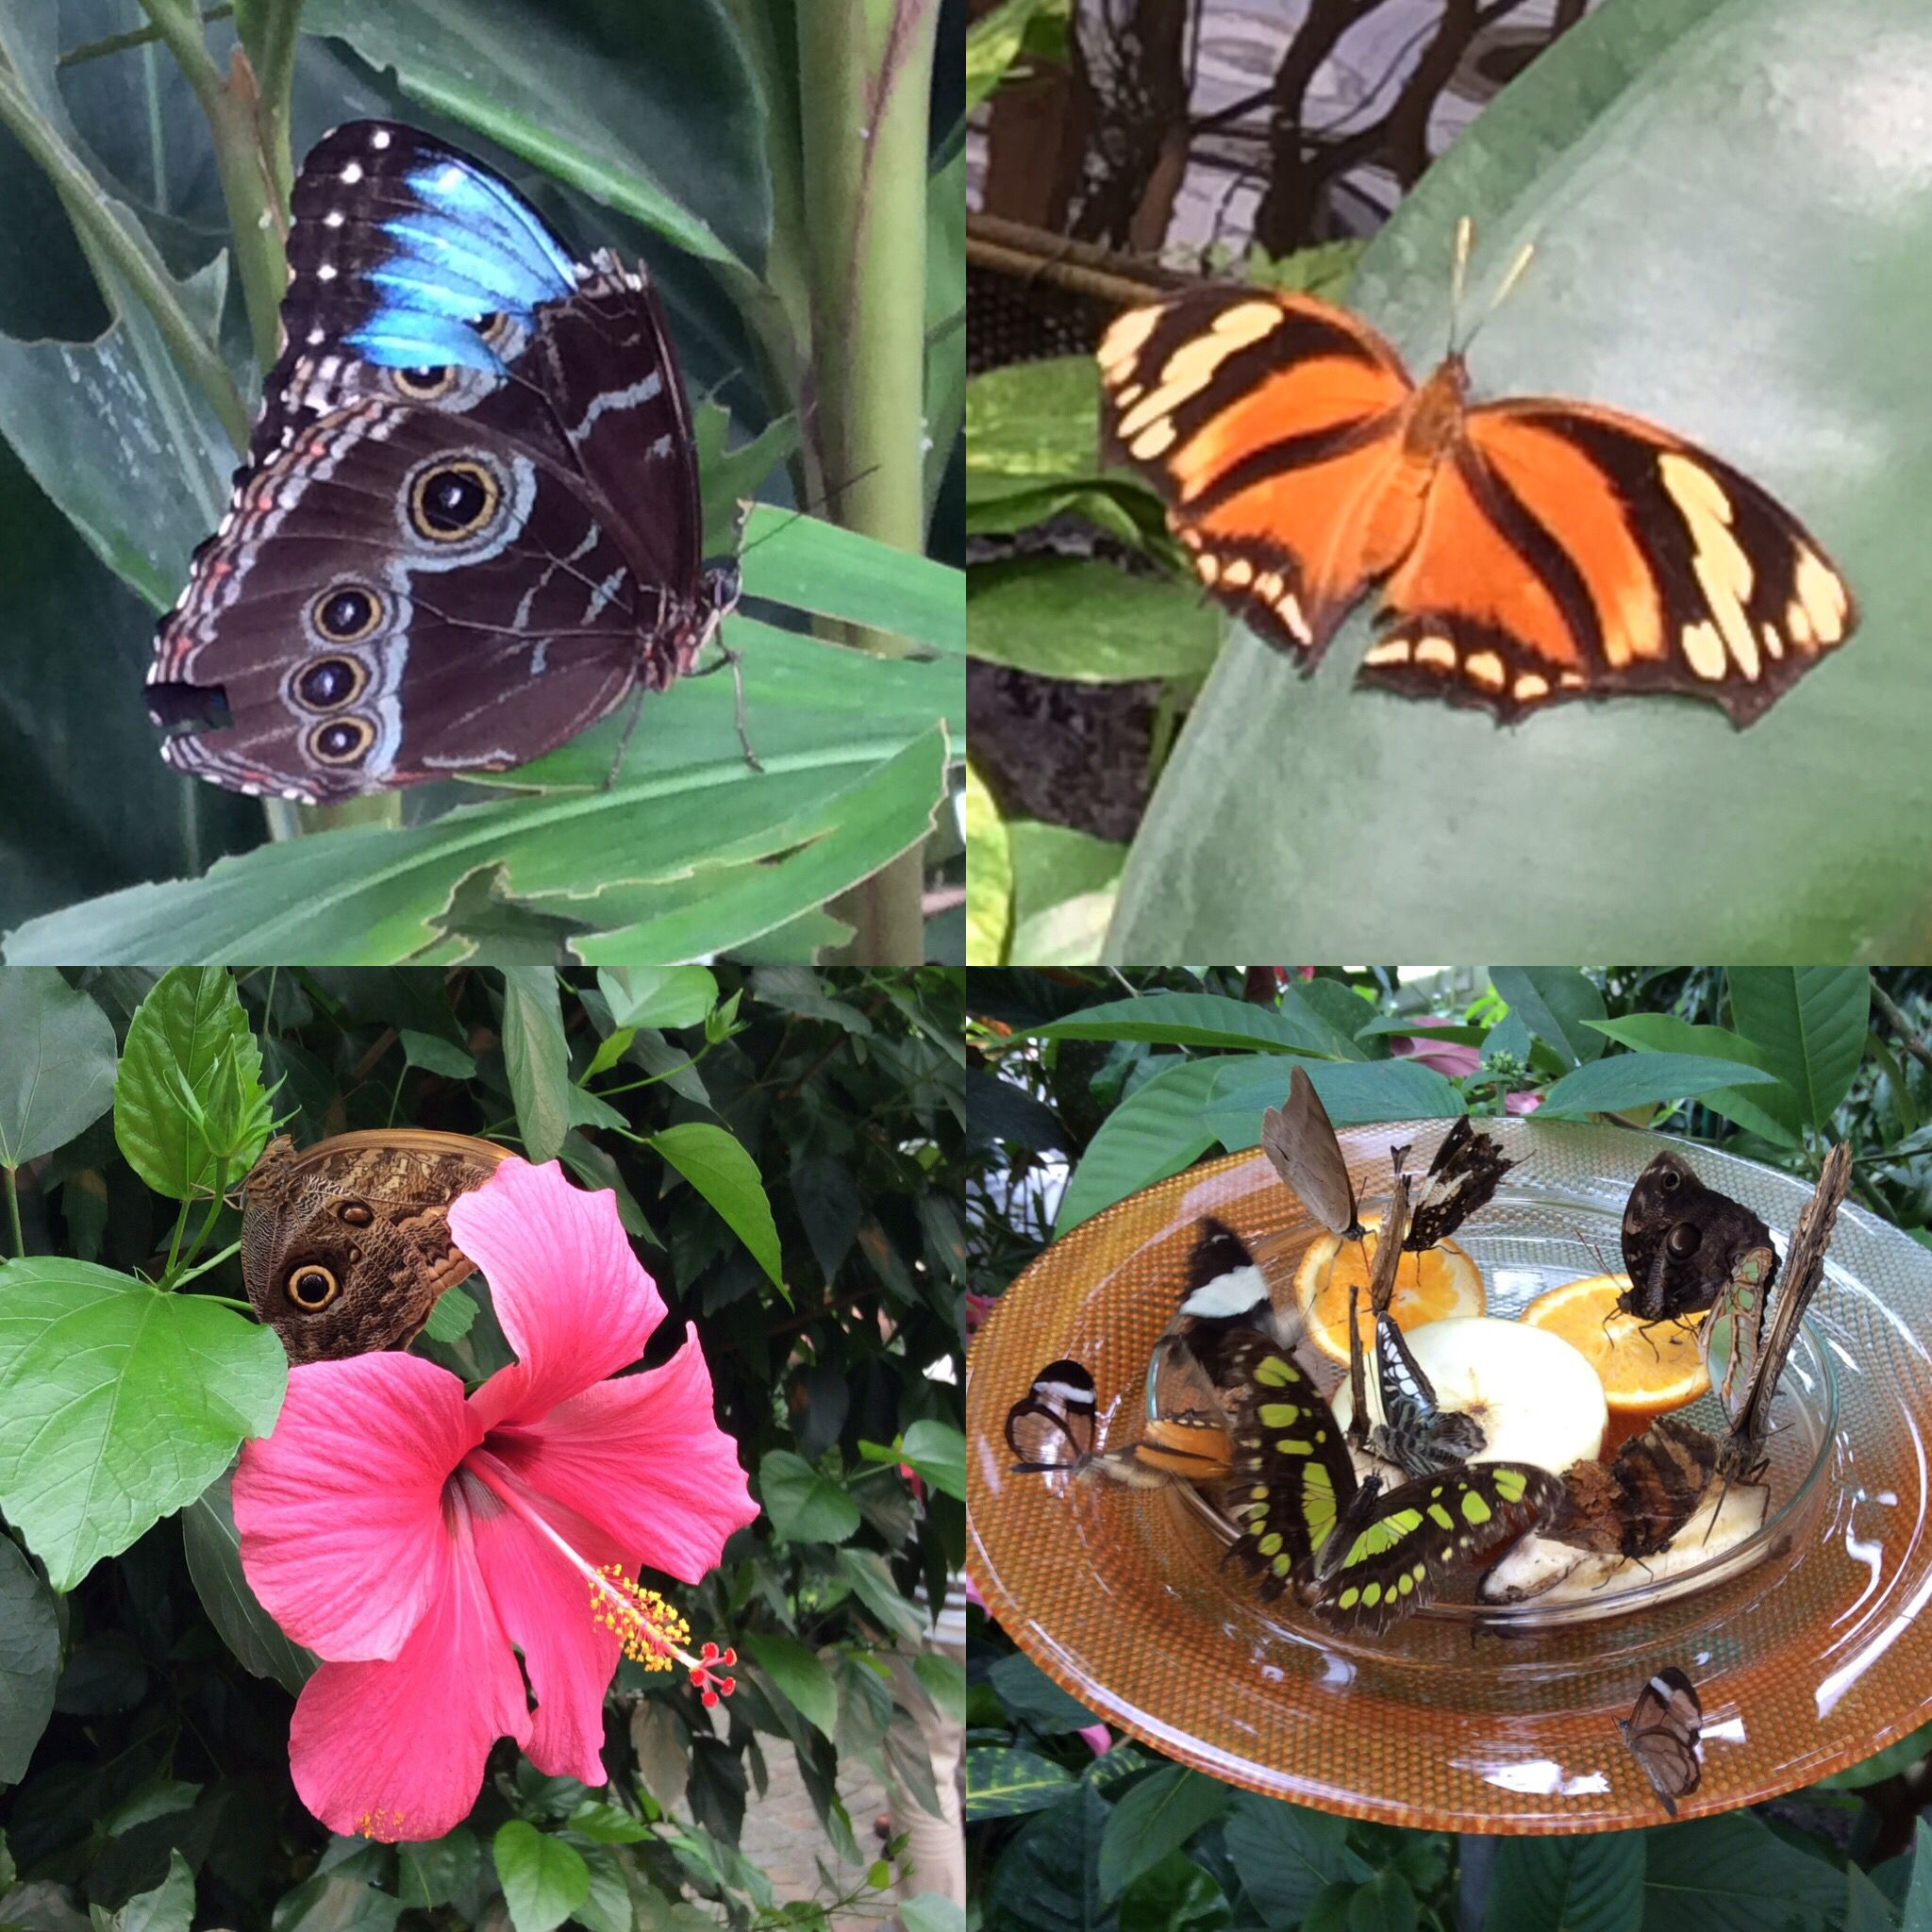 Butterflies taken at the Mainau Island Butterfly Centre on Lake Constance, Germany #Butterflies